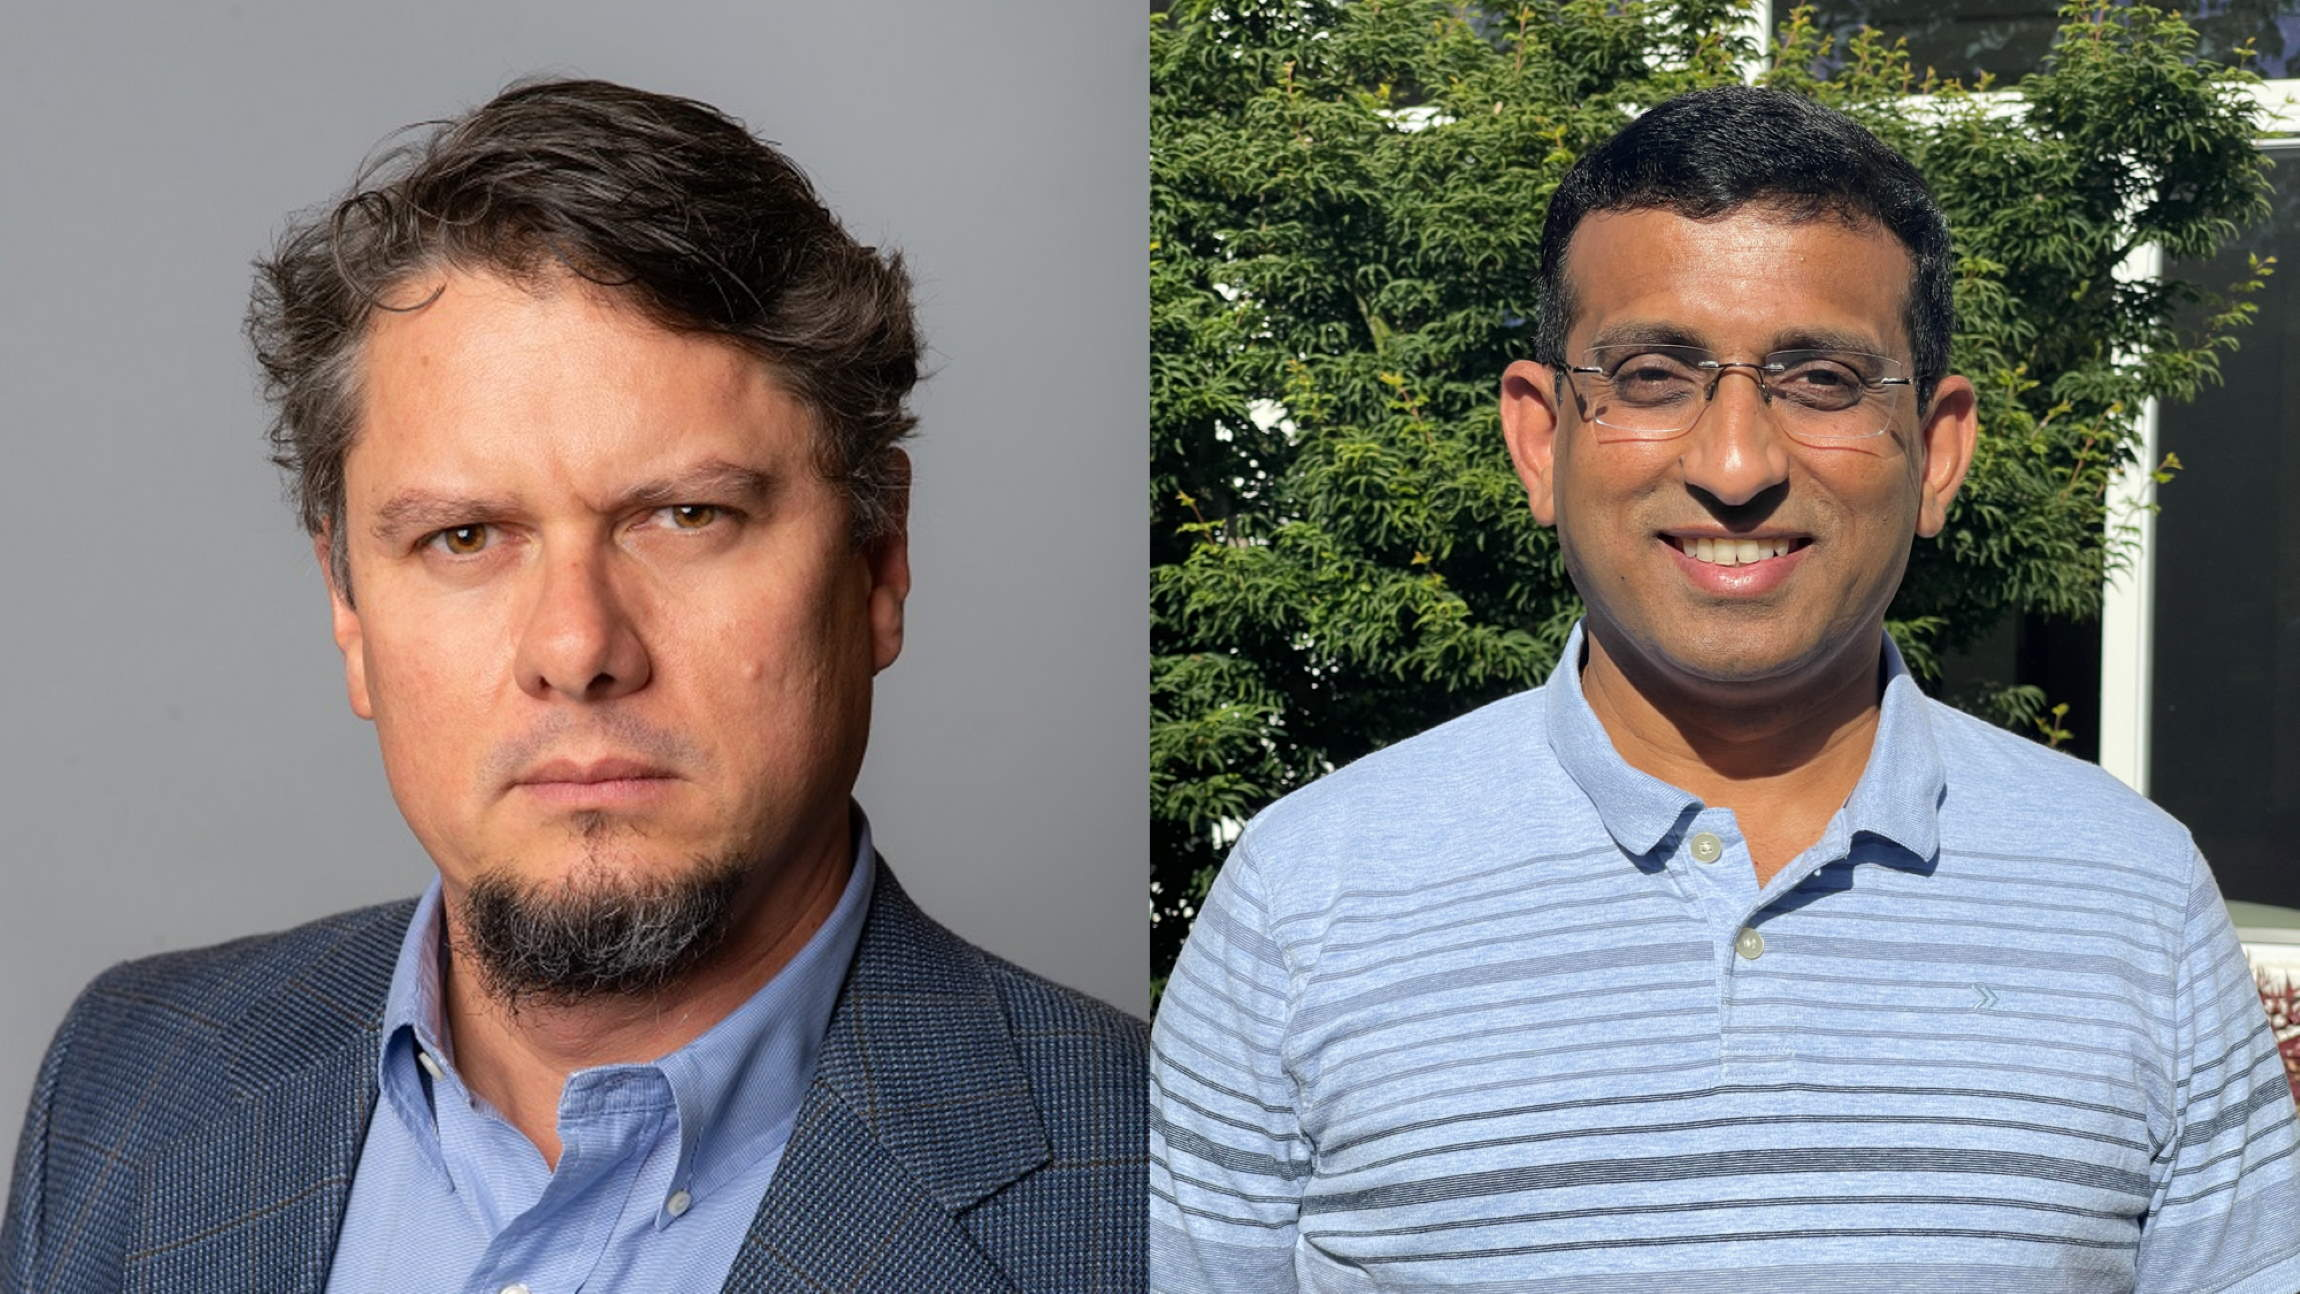 At left, Ulloa looks at the camera in a headshot photo. At right, Ambekar poses outside wearing glasses and smiling.